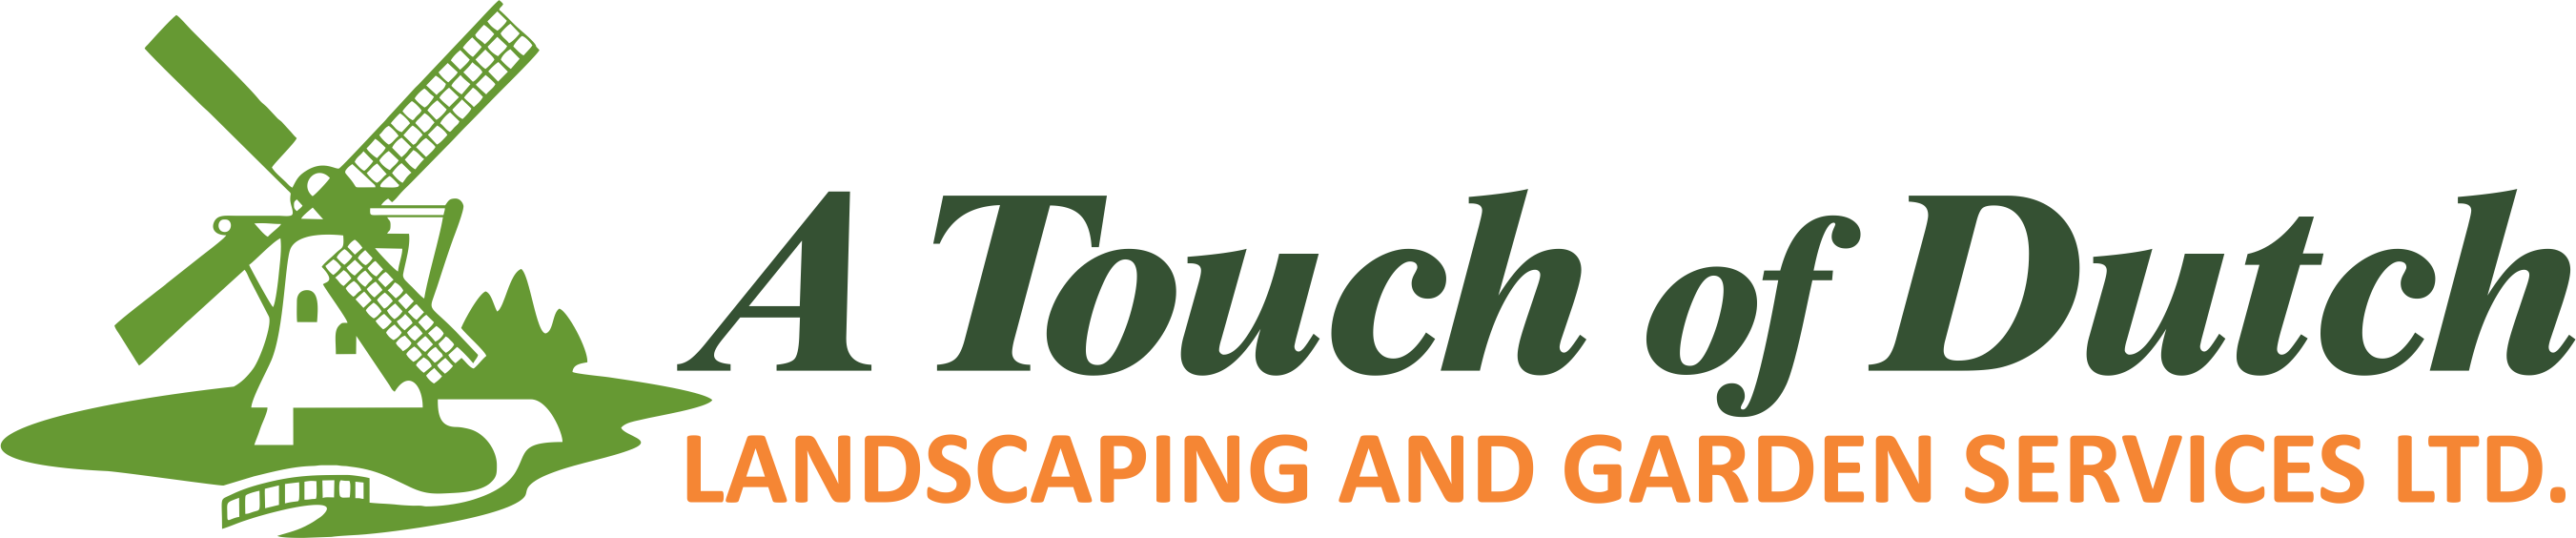 A Touch of Dutch Landscaping and Garden Services Ltd.